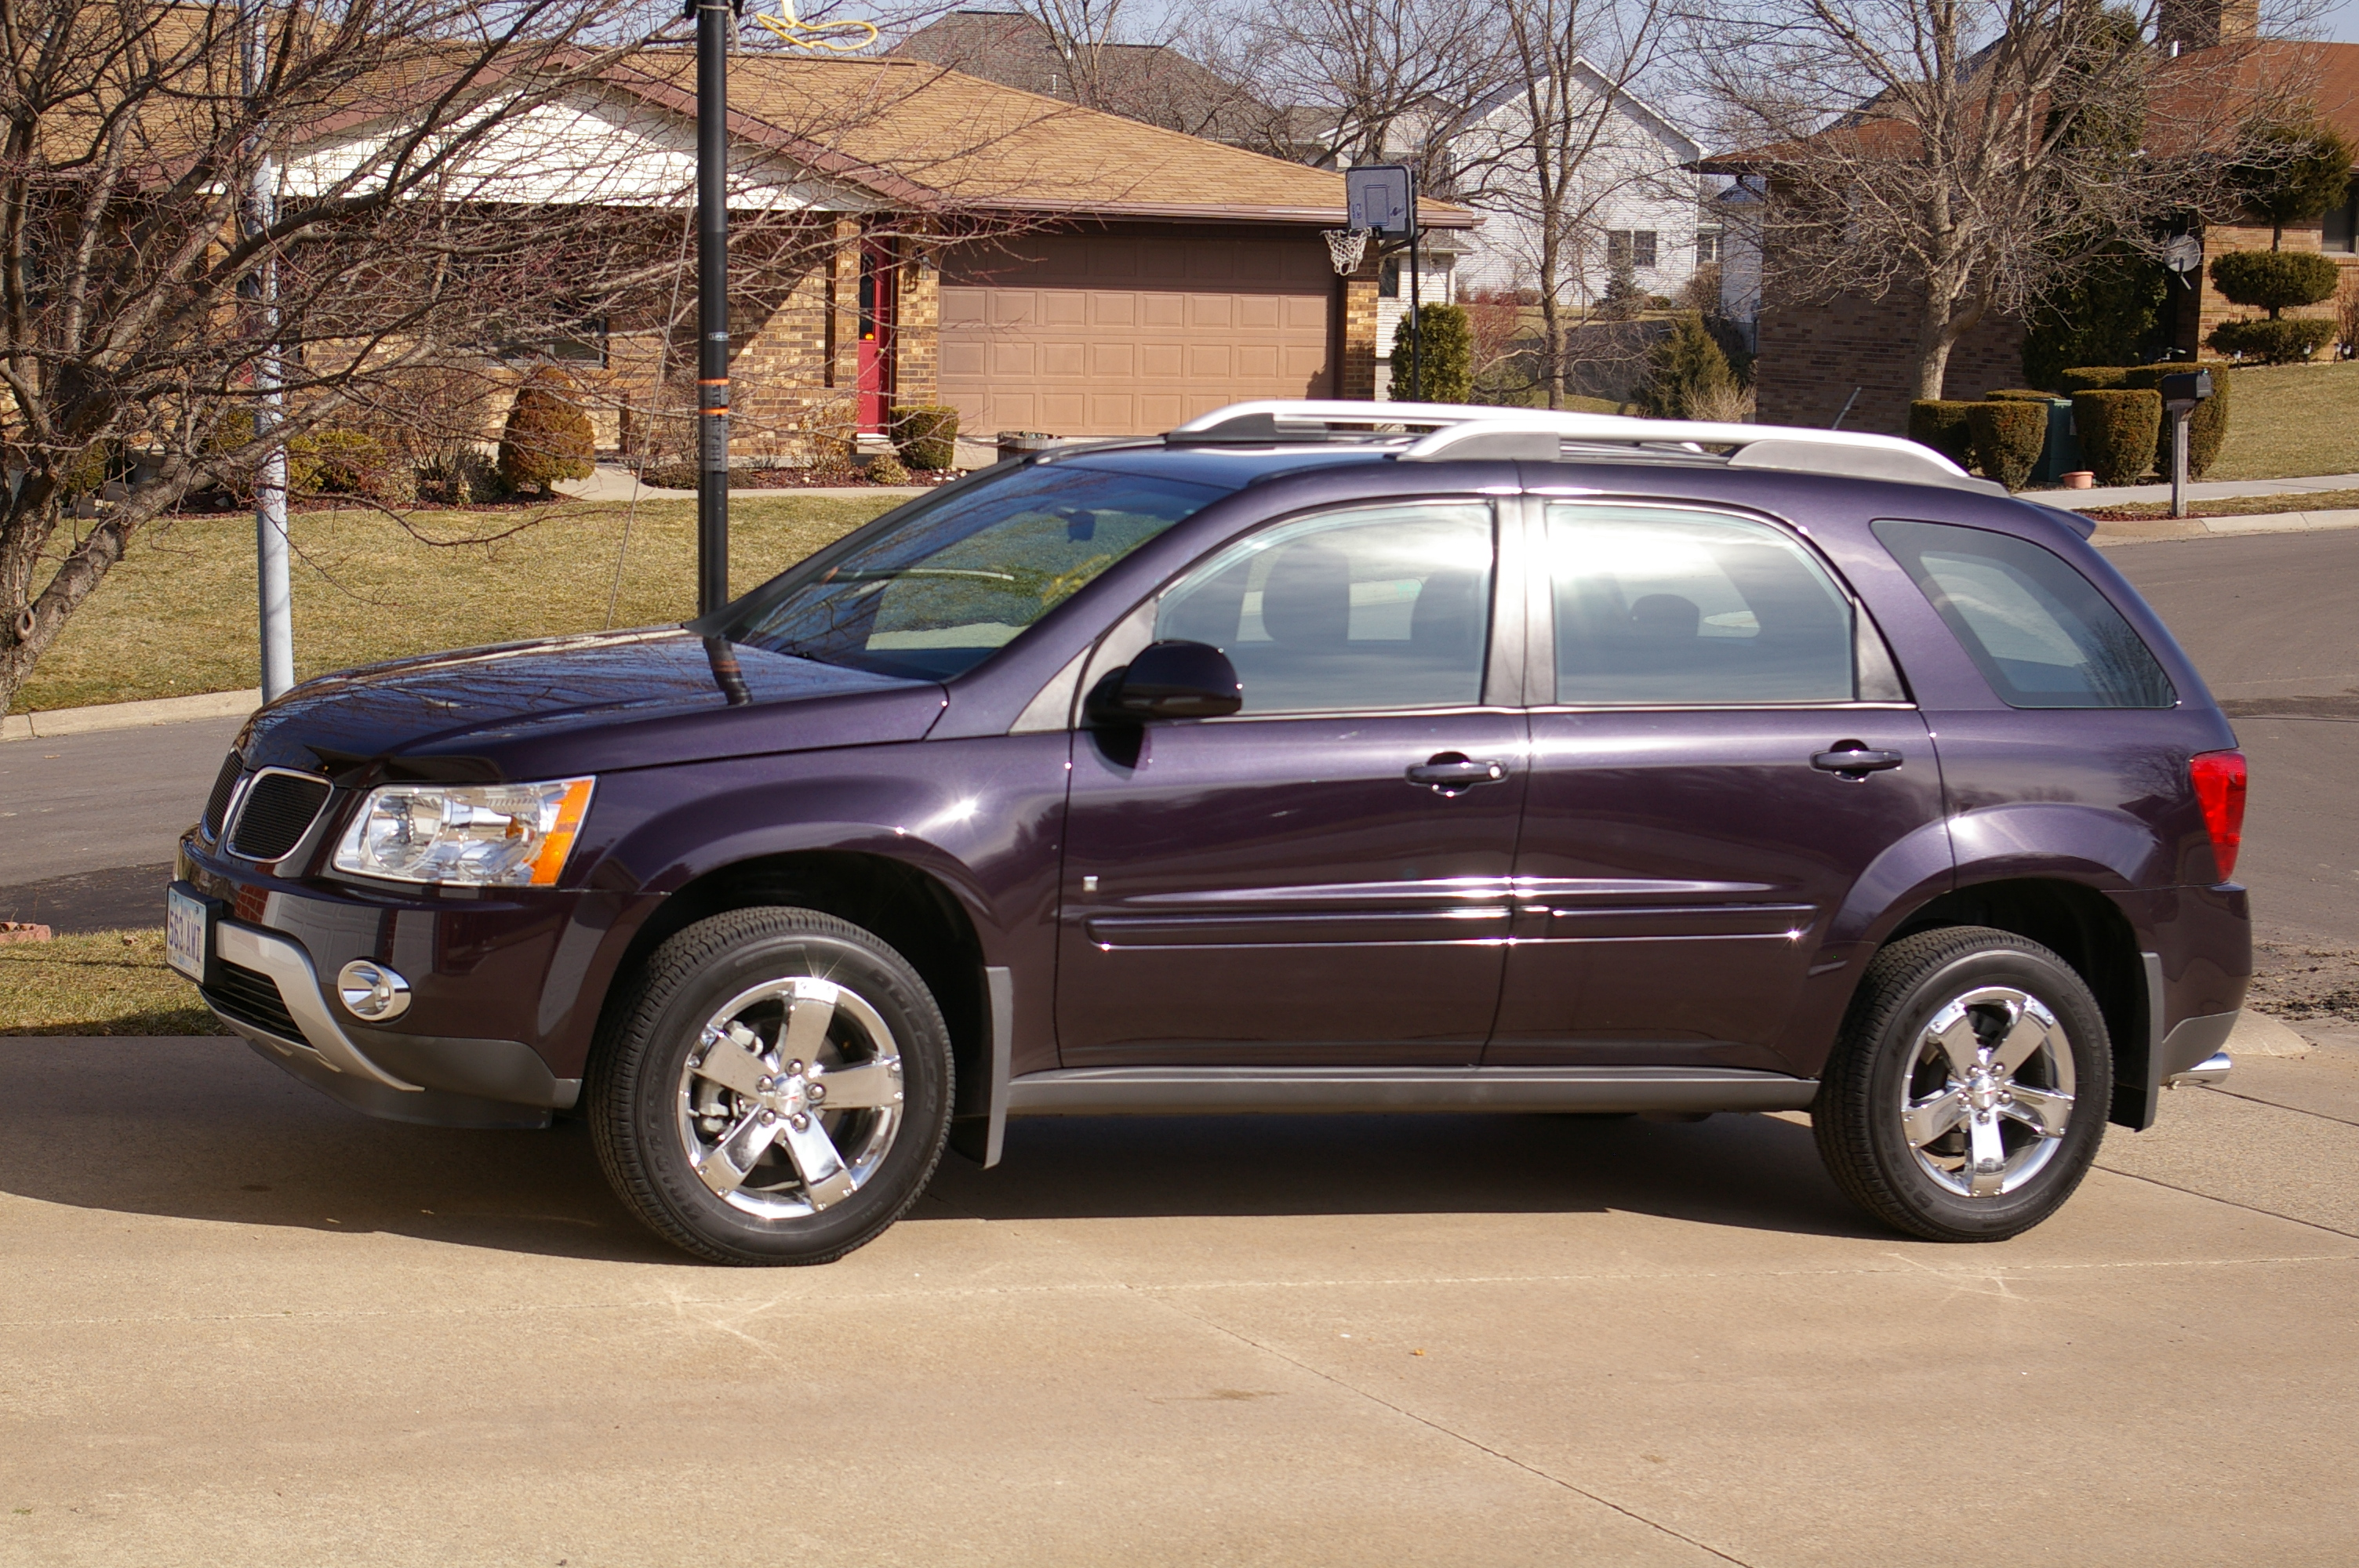 Pontiac Torrent #2